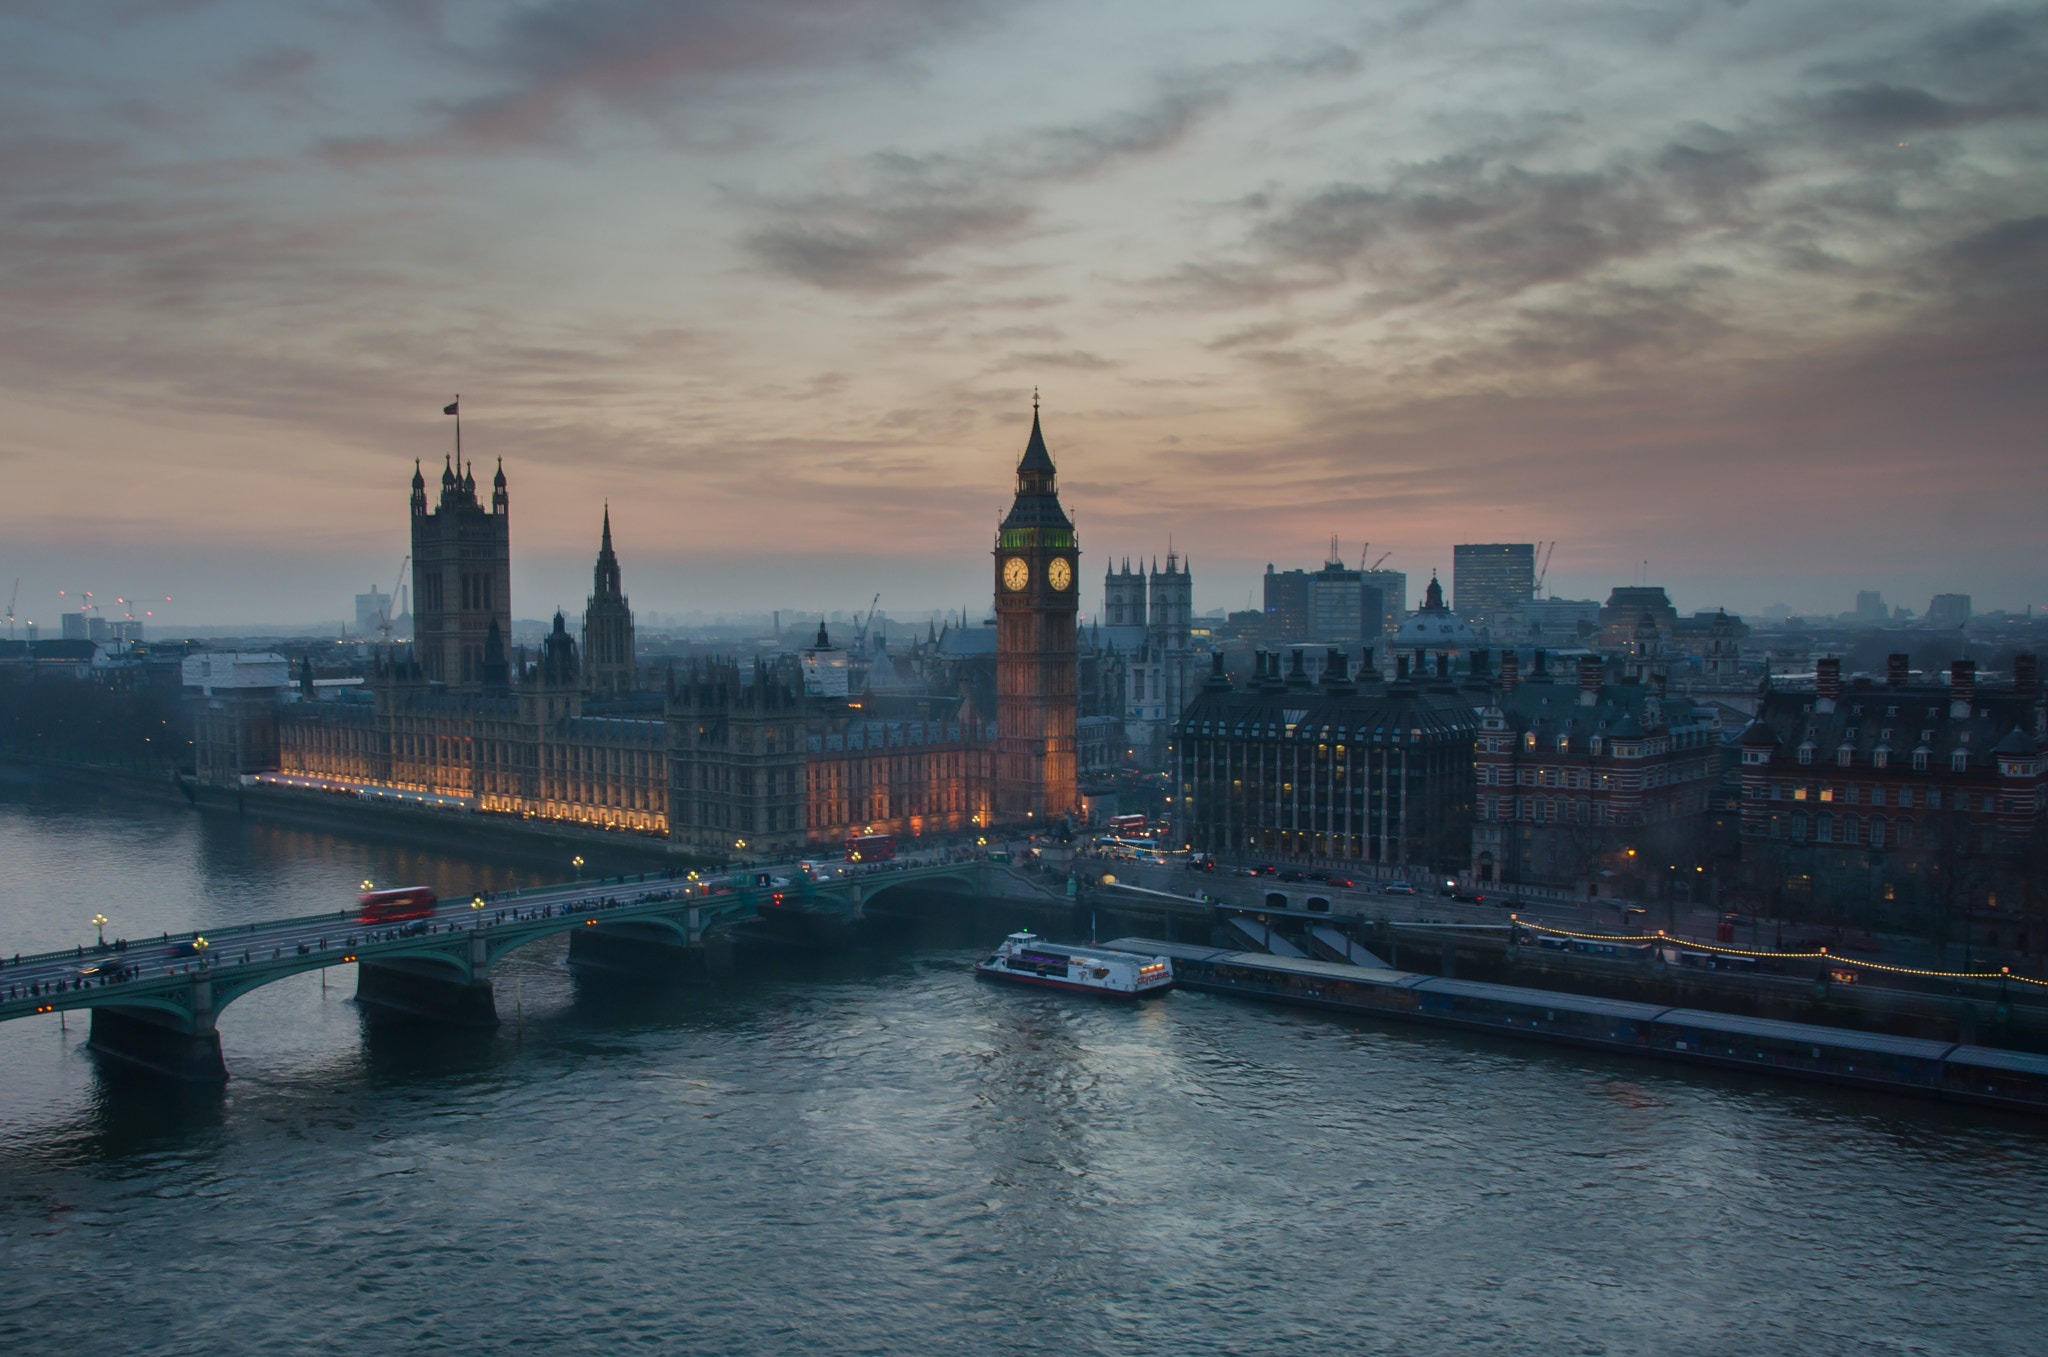 Photograph London by jaime puchal on 500px